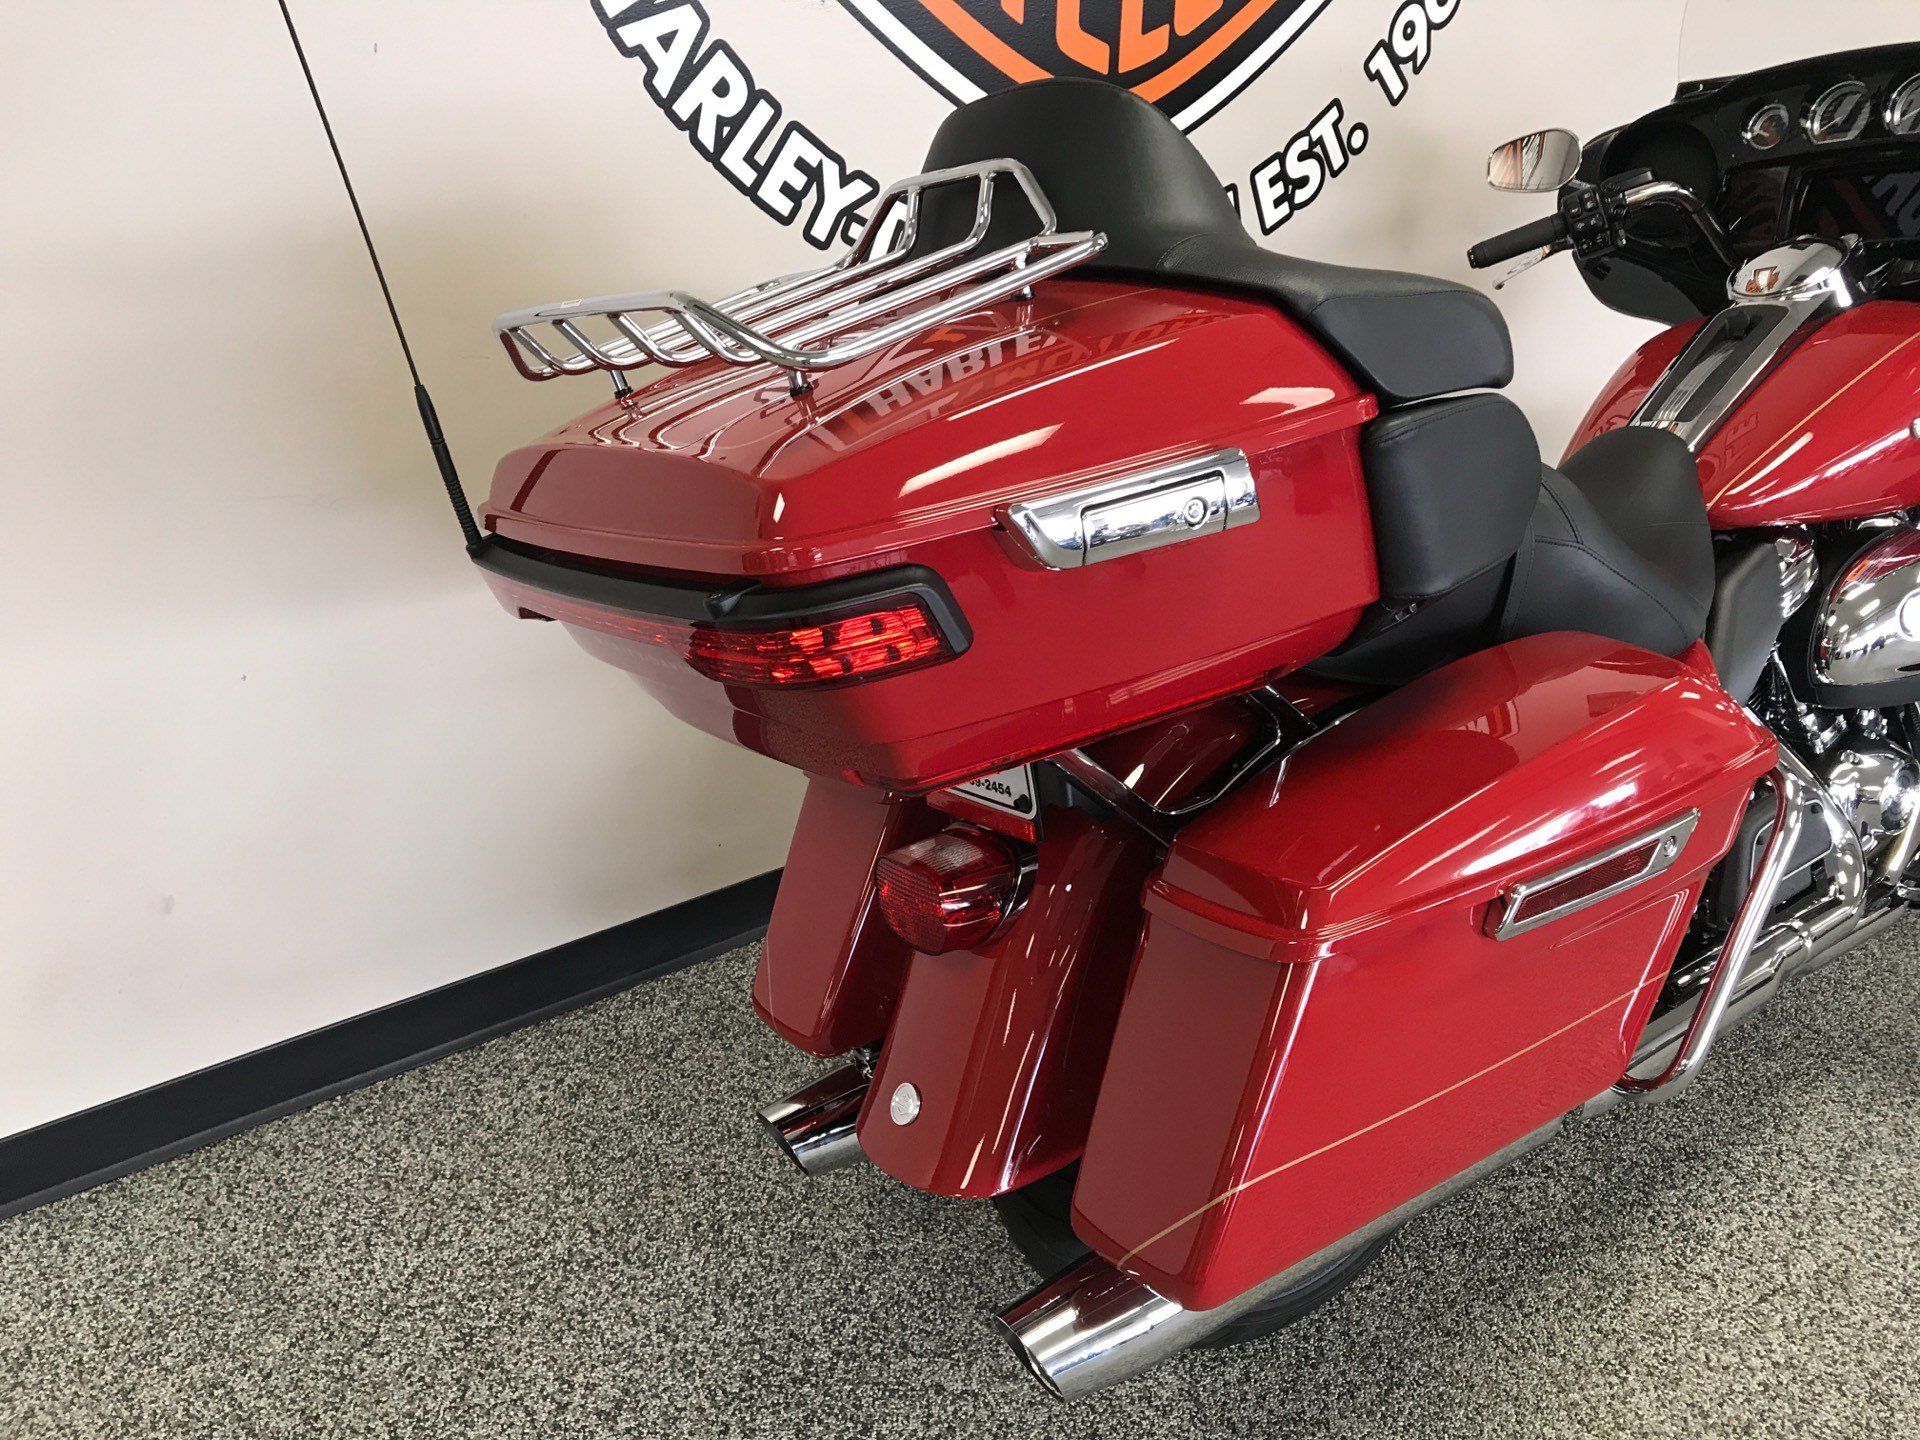 2020 Harley-Davidson ULTRA LIMITED FIREFIGHTER EDITION in Knoxville, Tennessee - Photo 6